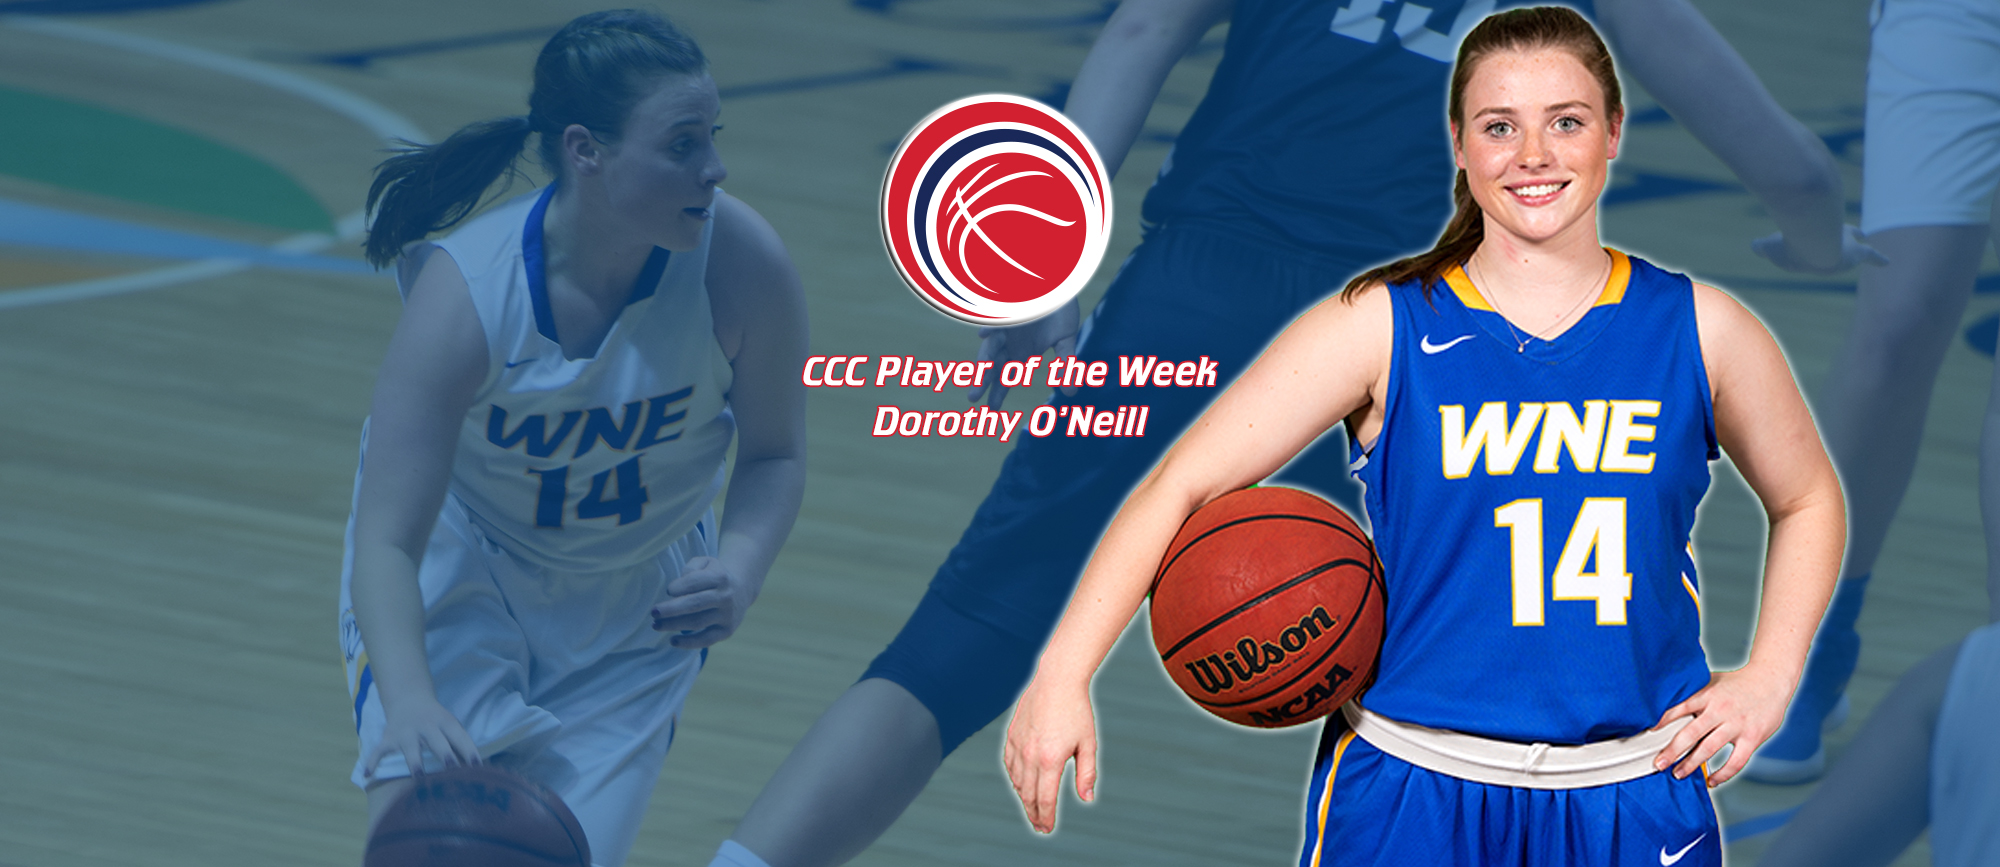 Dorothy O'Neill Earns First Career CCC Player of the Week Award